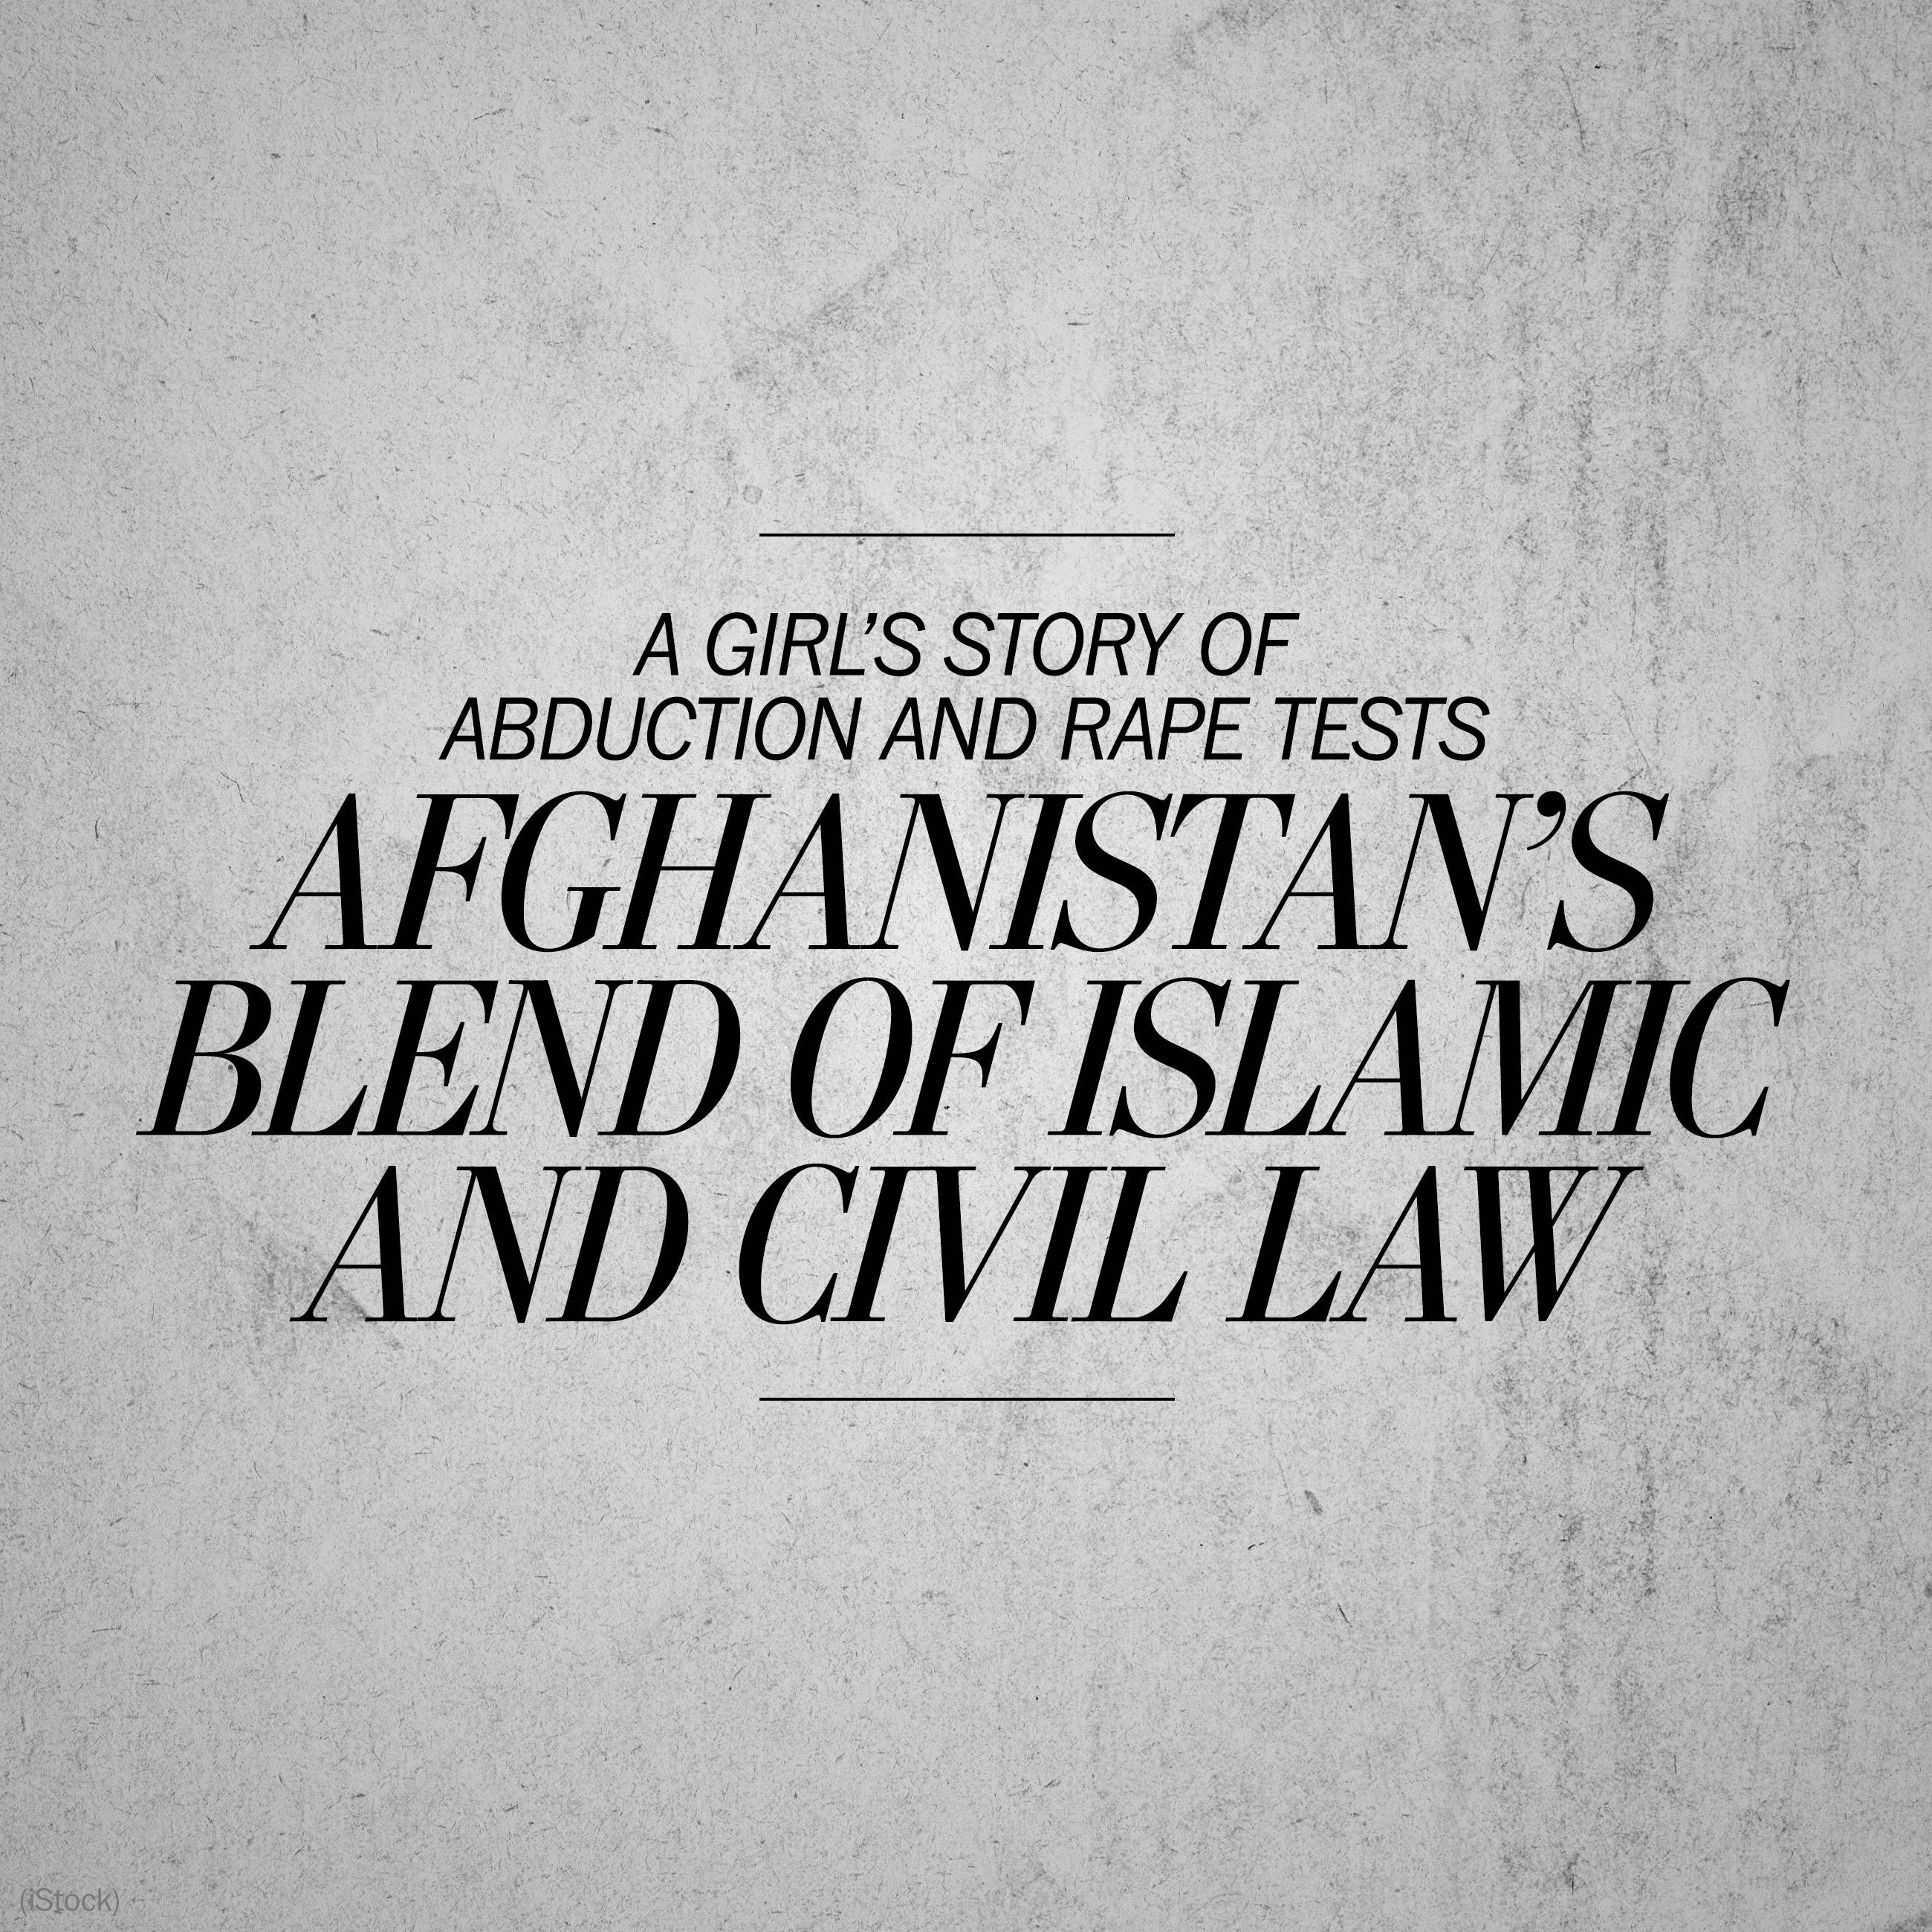 An Afghan girl's story of abduction and rape tests an incoherent justice system